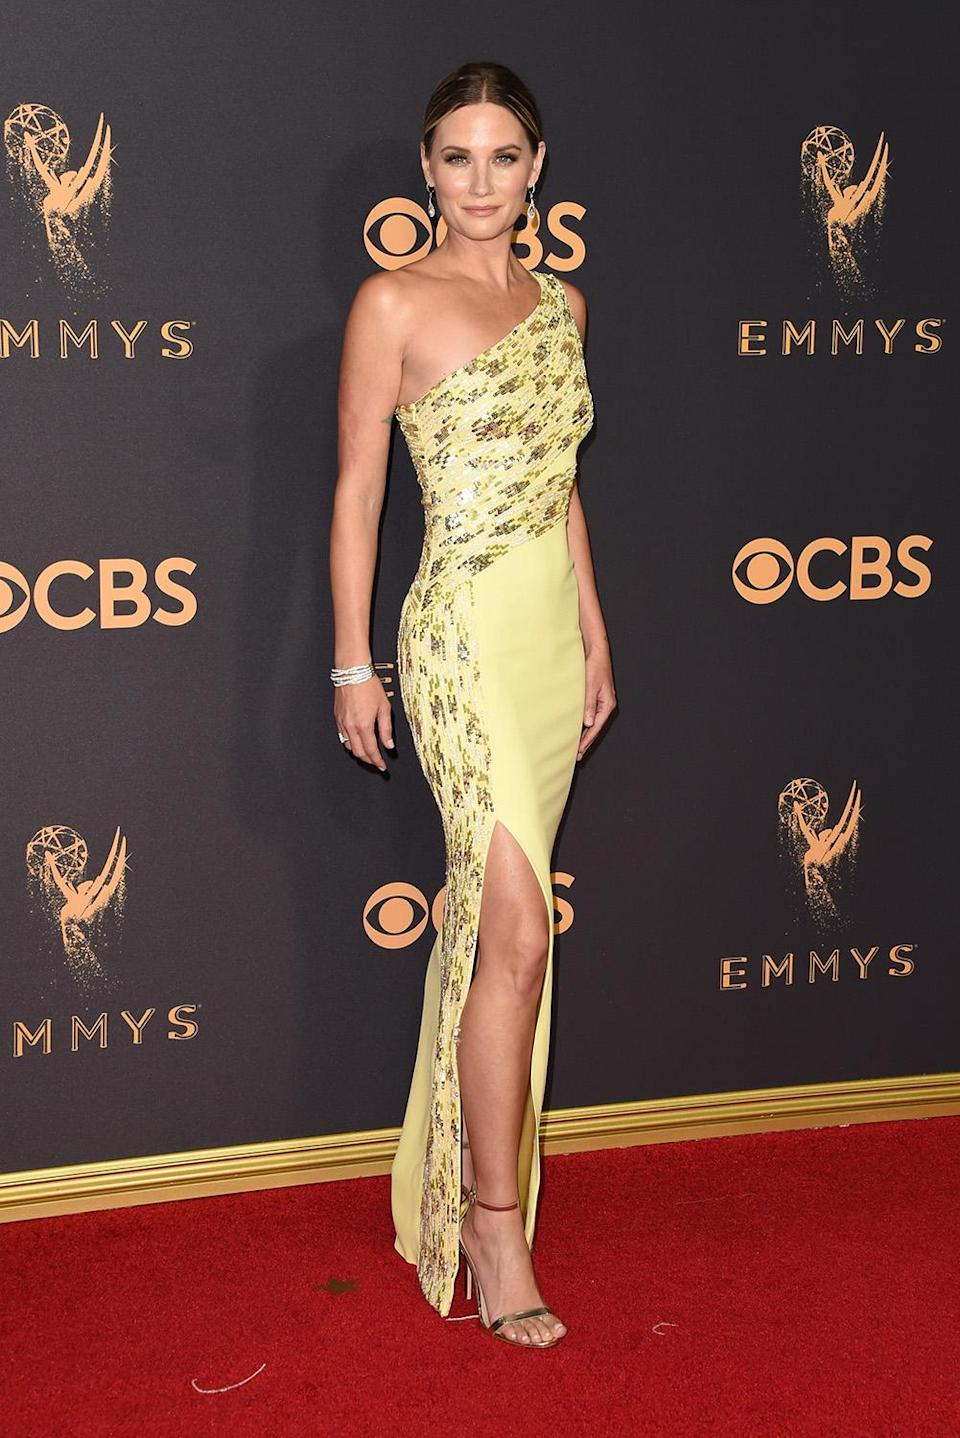 <p>Jennifer Nettles attends the 69th Annual Primetime Emmy Awards at Microsoft Theater on September 17, 2017 in Los Angeles, California. (Photo by J. Merritt/Getty Images) </p>